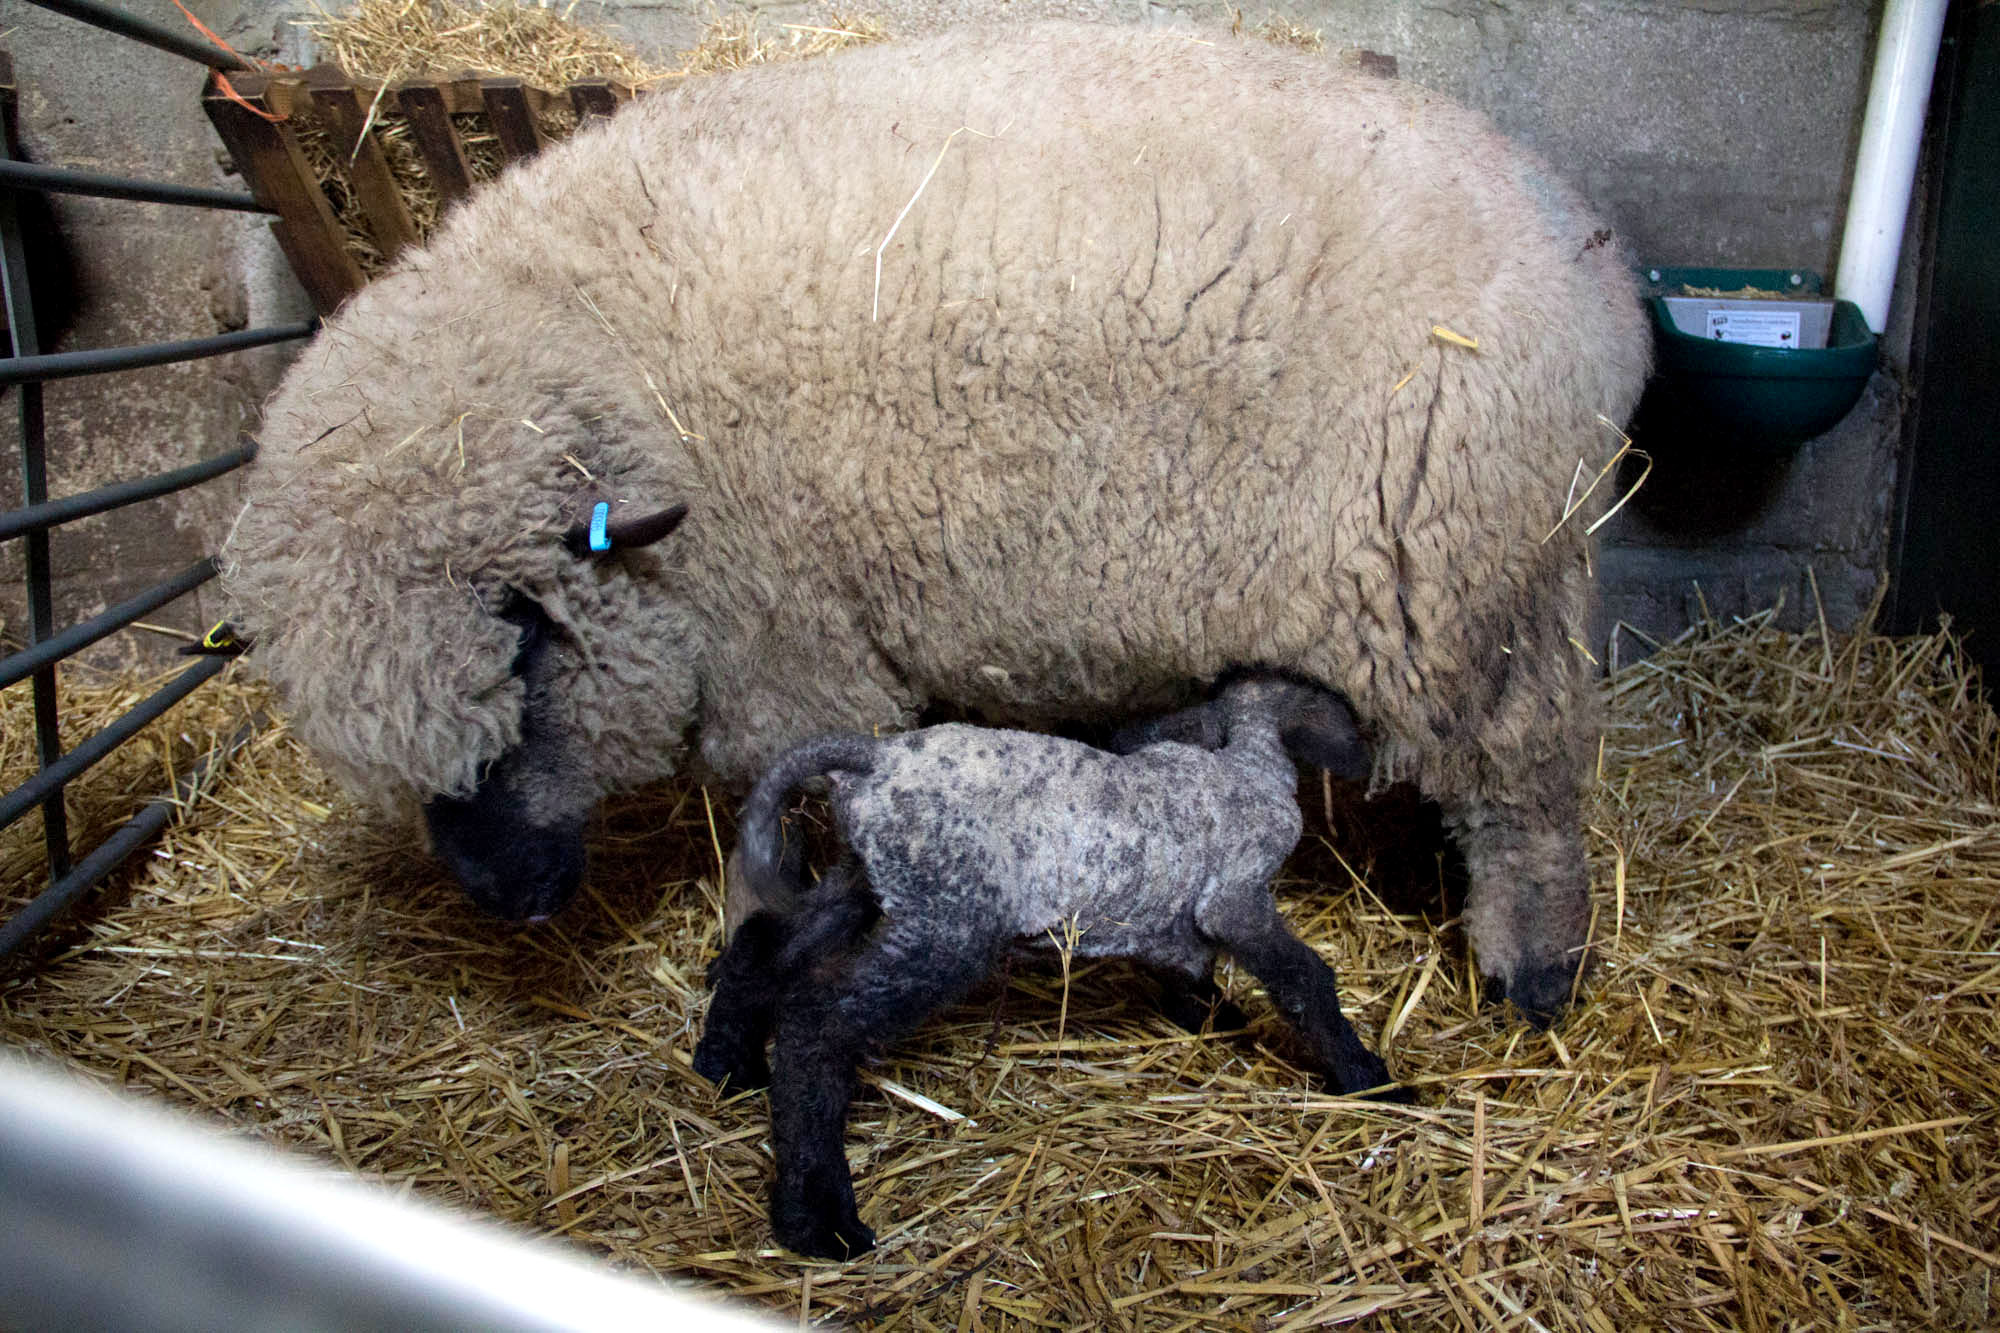 The new lambs are now nursing well.